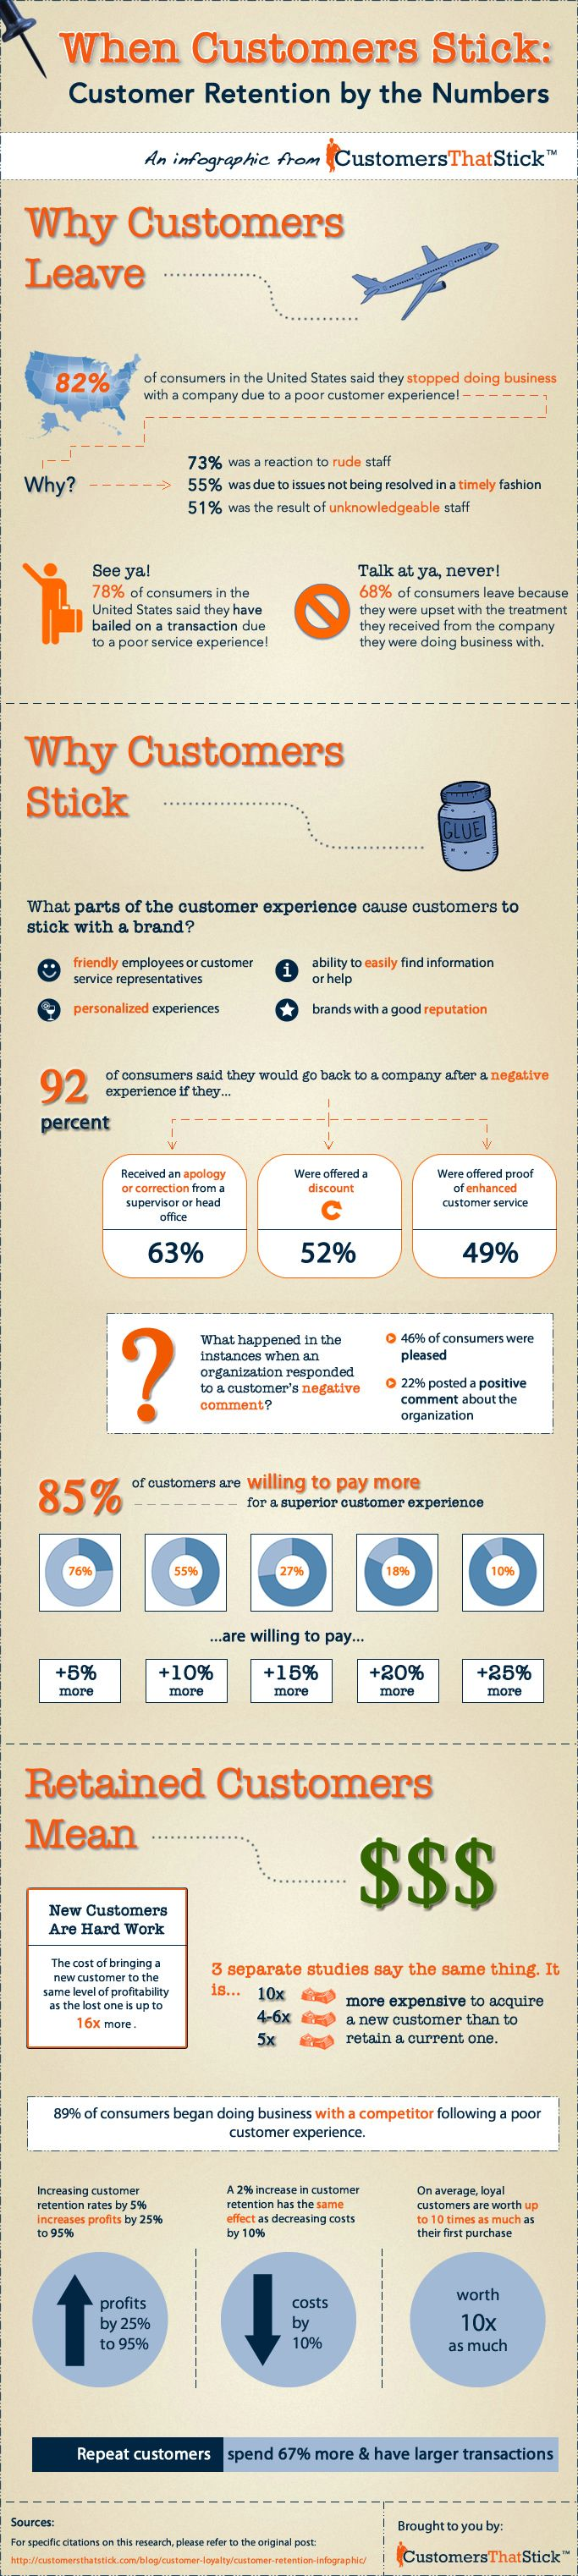 customer retention (Infographic)